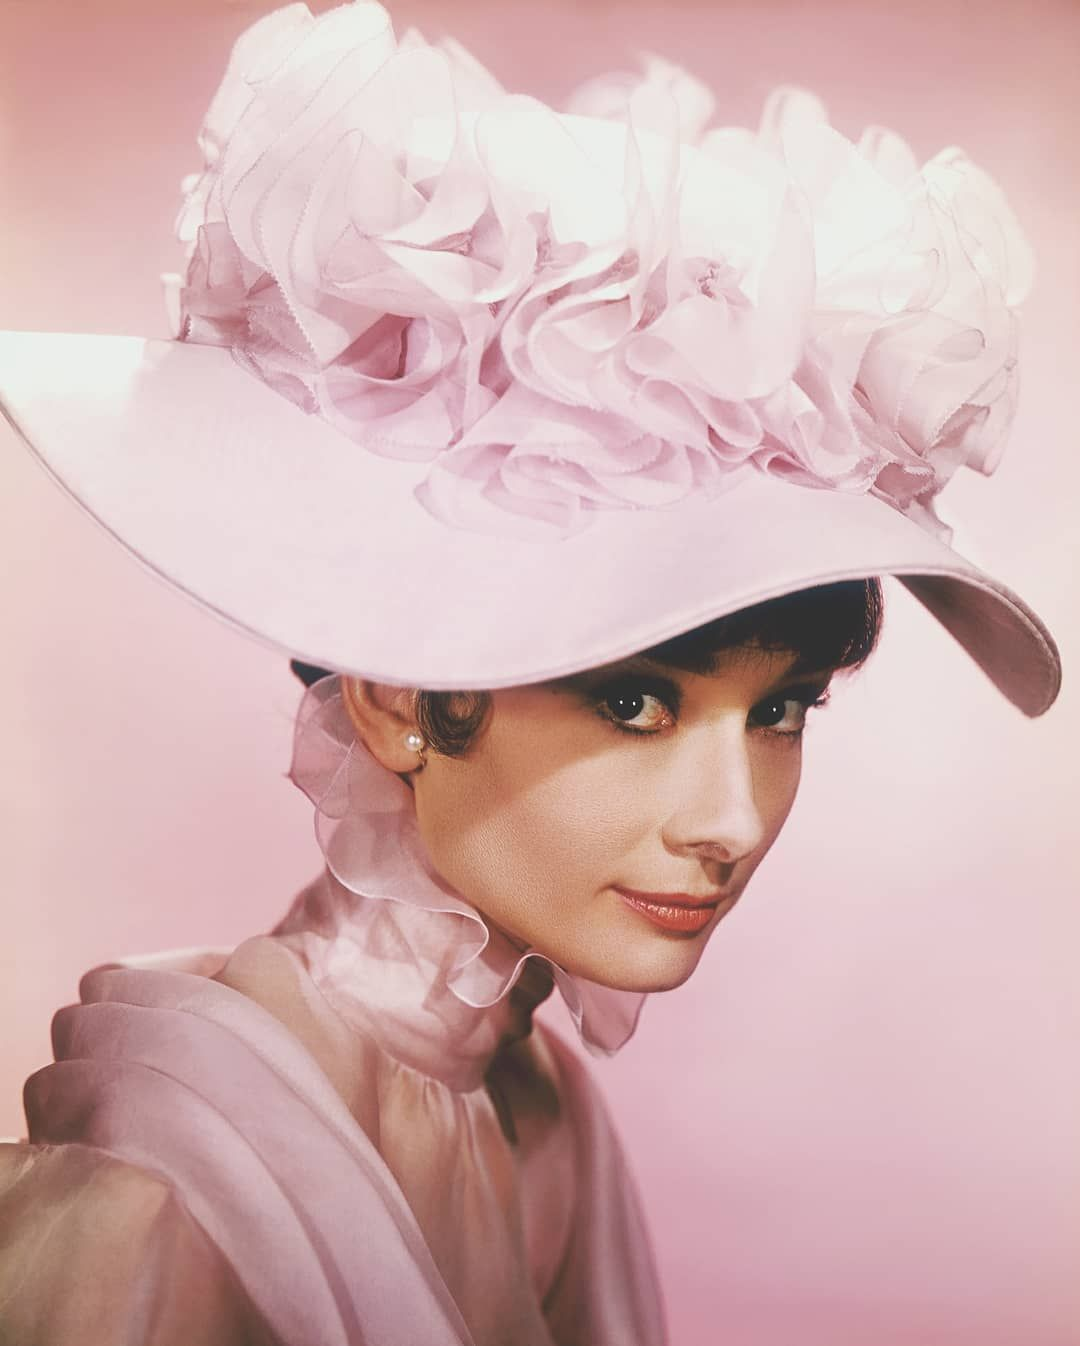 """Audrey Hepburn Fan on Instagram: """"Audrey in a promotional photo for My Fair Lady, 1963. Photo by Cecil Beaton. … #audreyhepburn #myfairlady #cecilbeaton #actress…"""""""